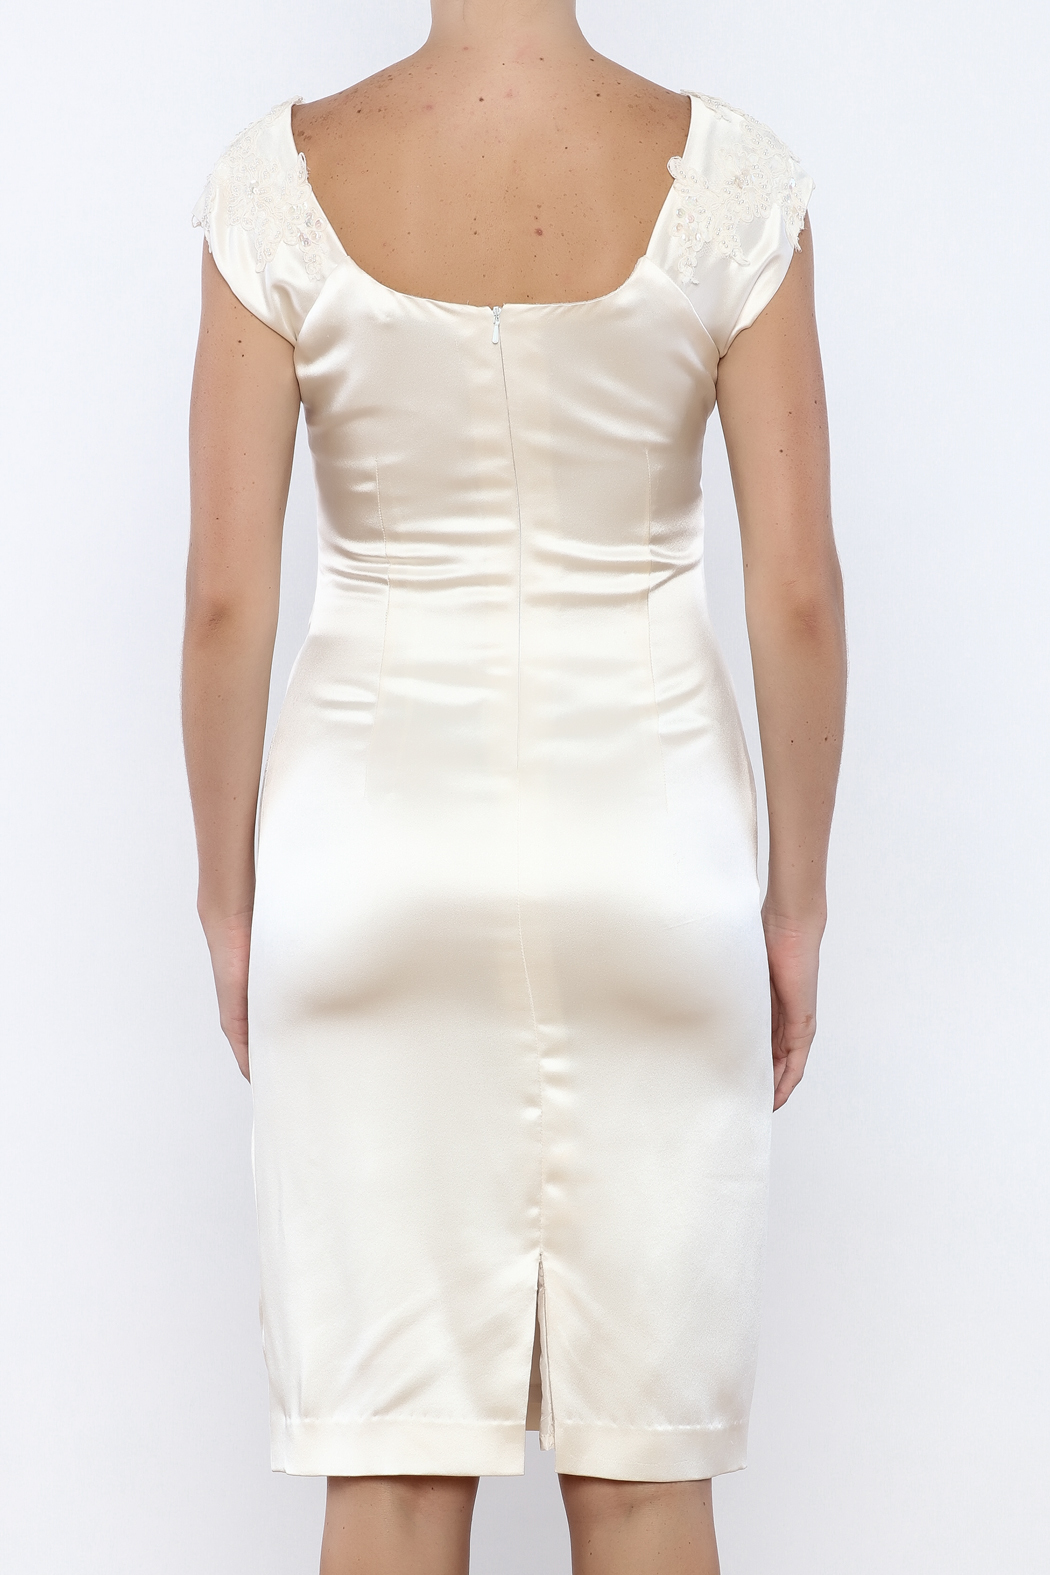 Stephanie D Couture Sophie Dress - Back Cropped Image